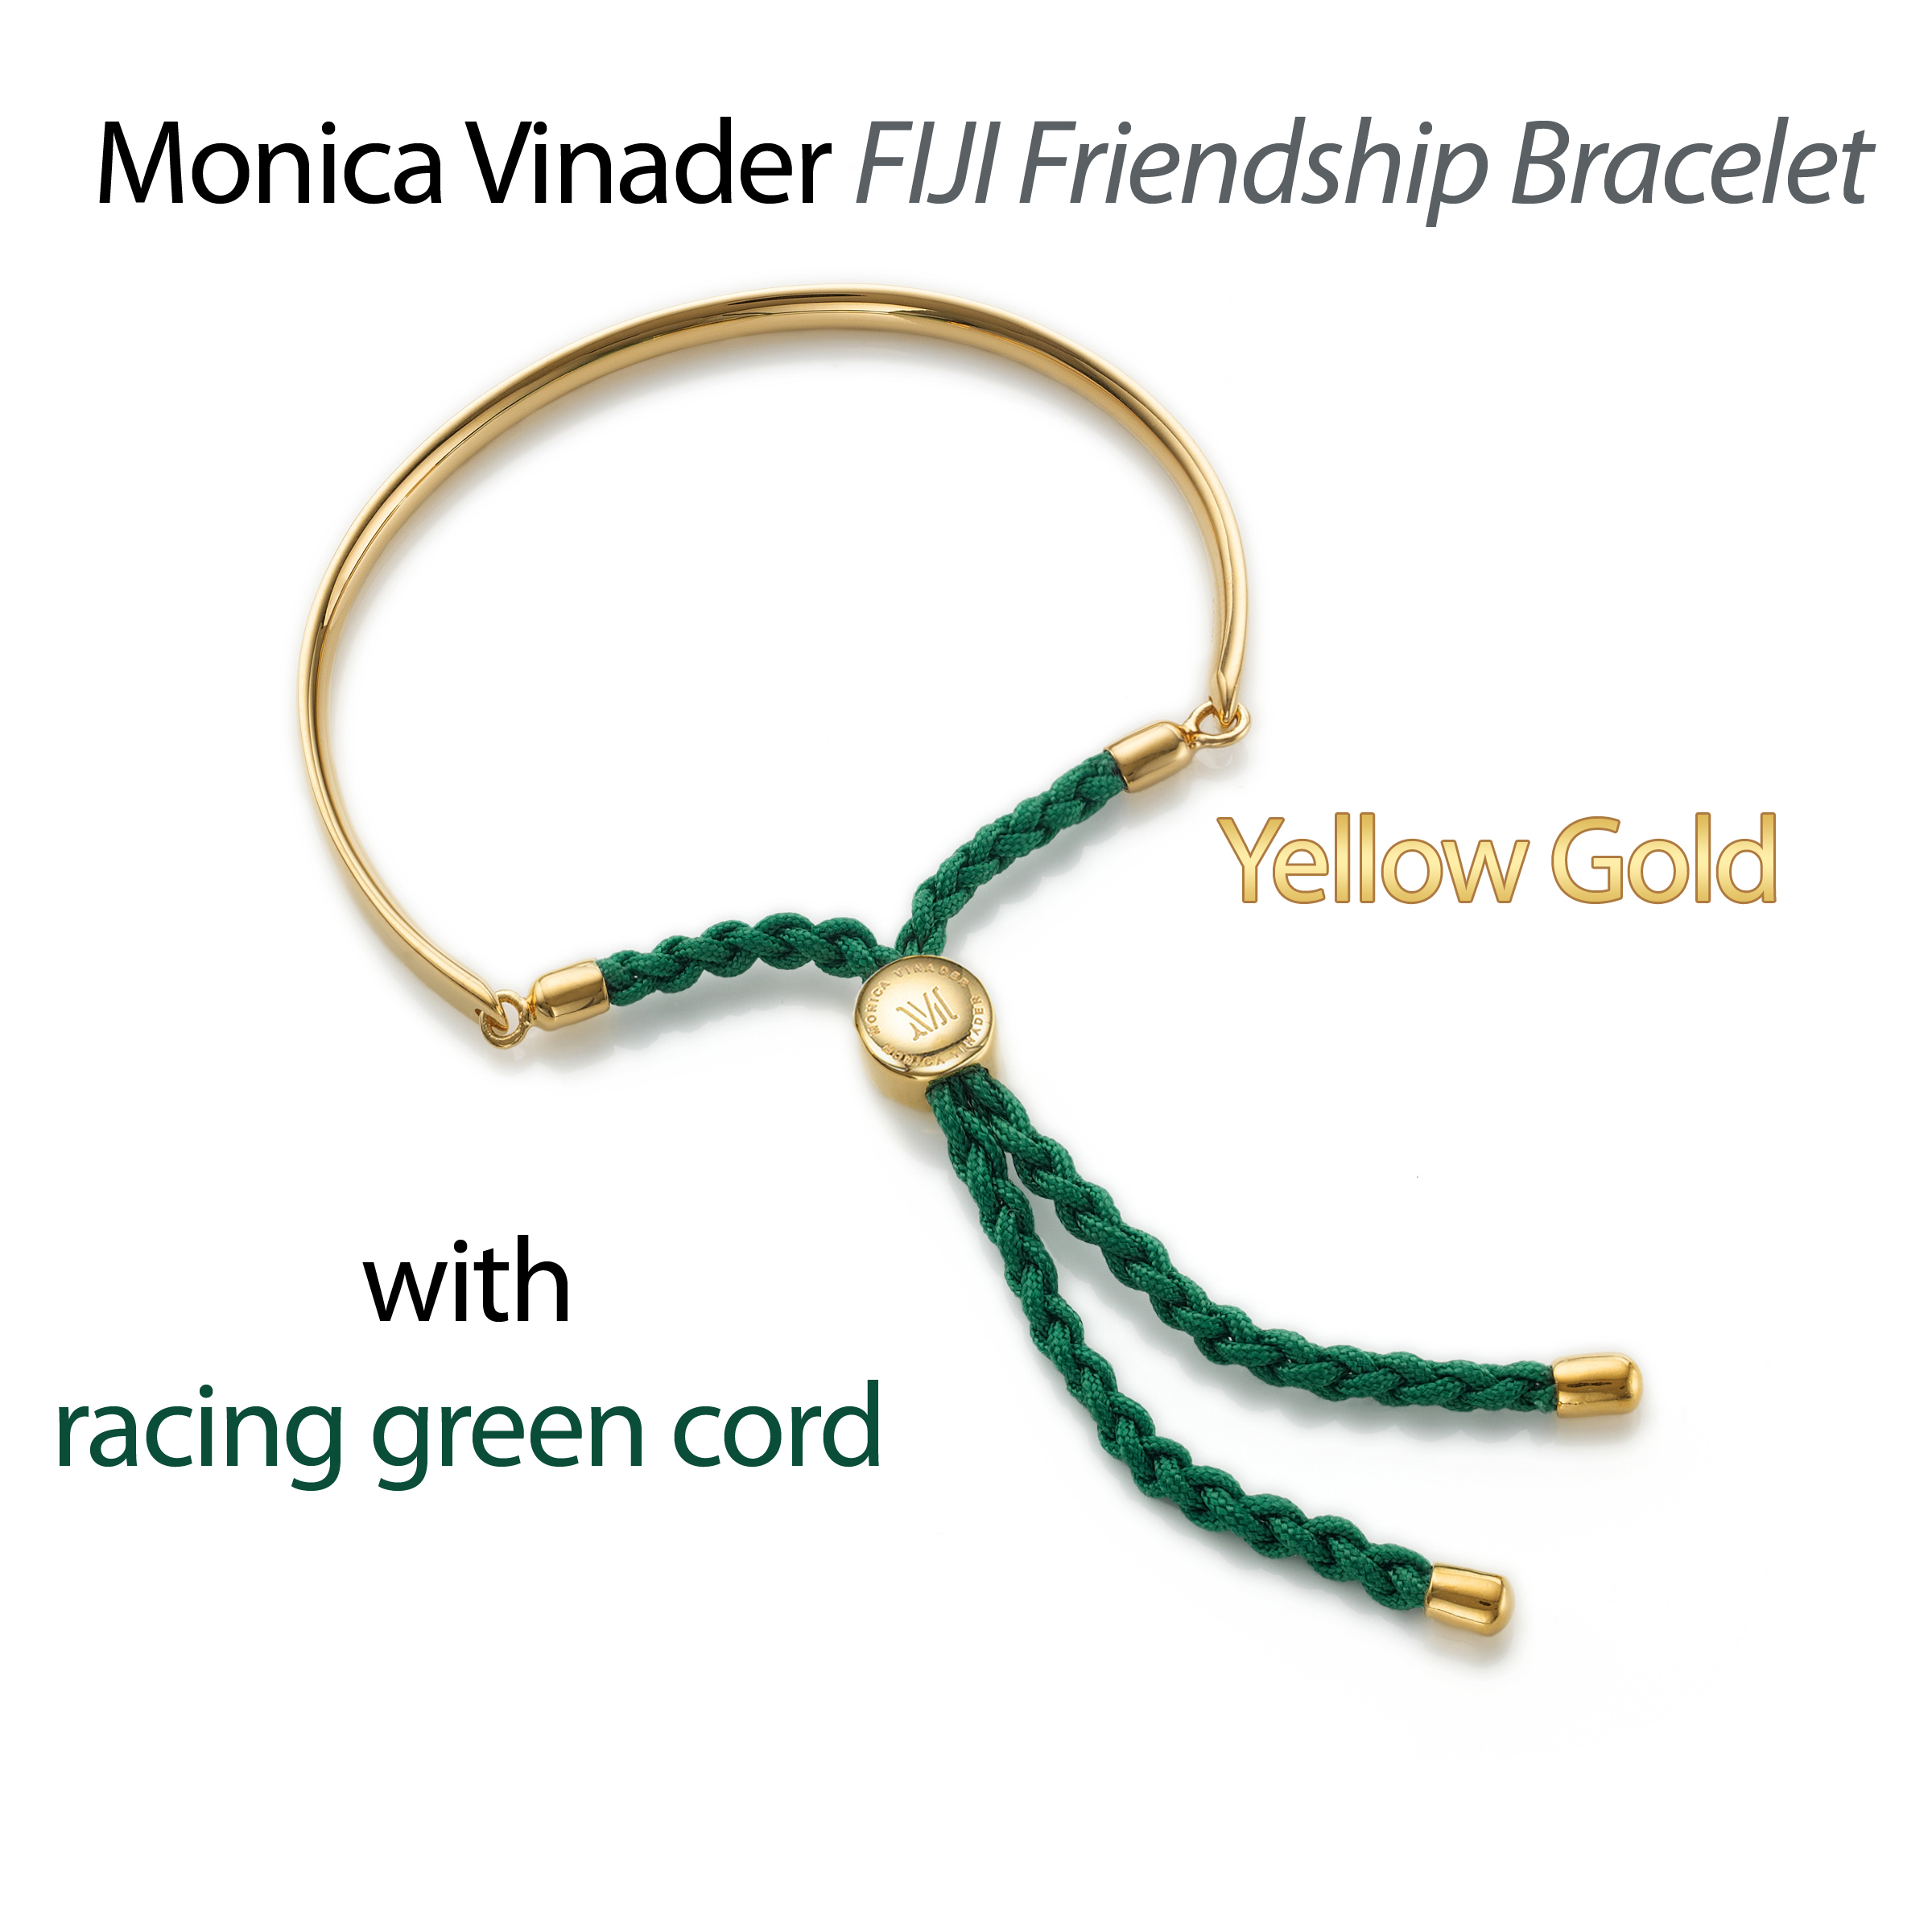 Monica Vinader Fiji friendship bracelet yellow gold with racing green cord